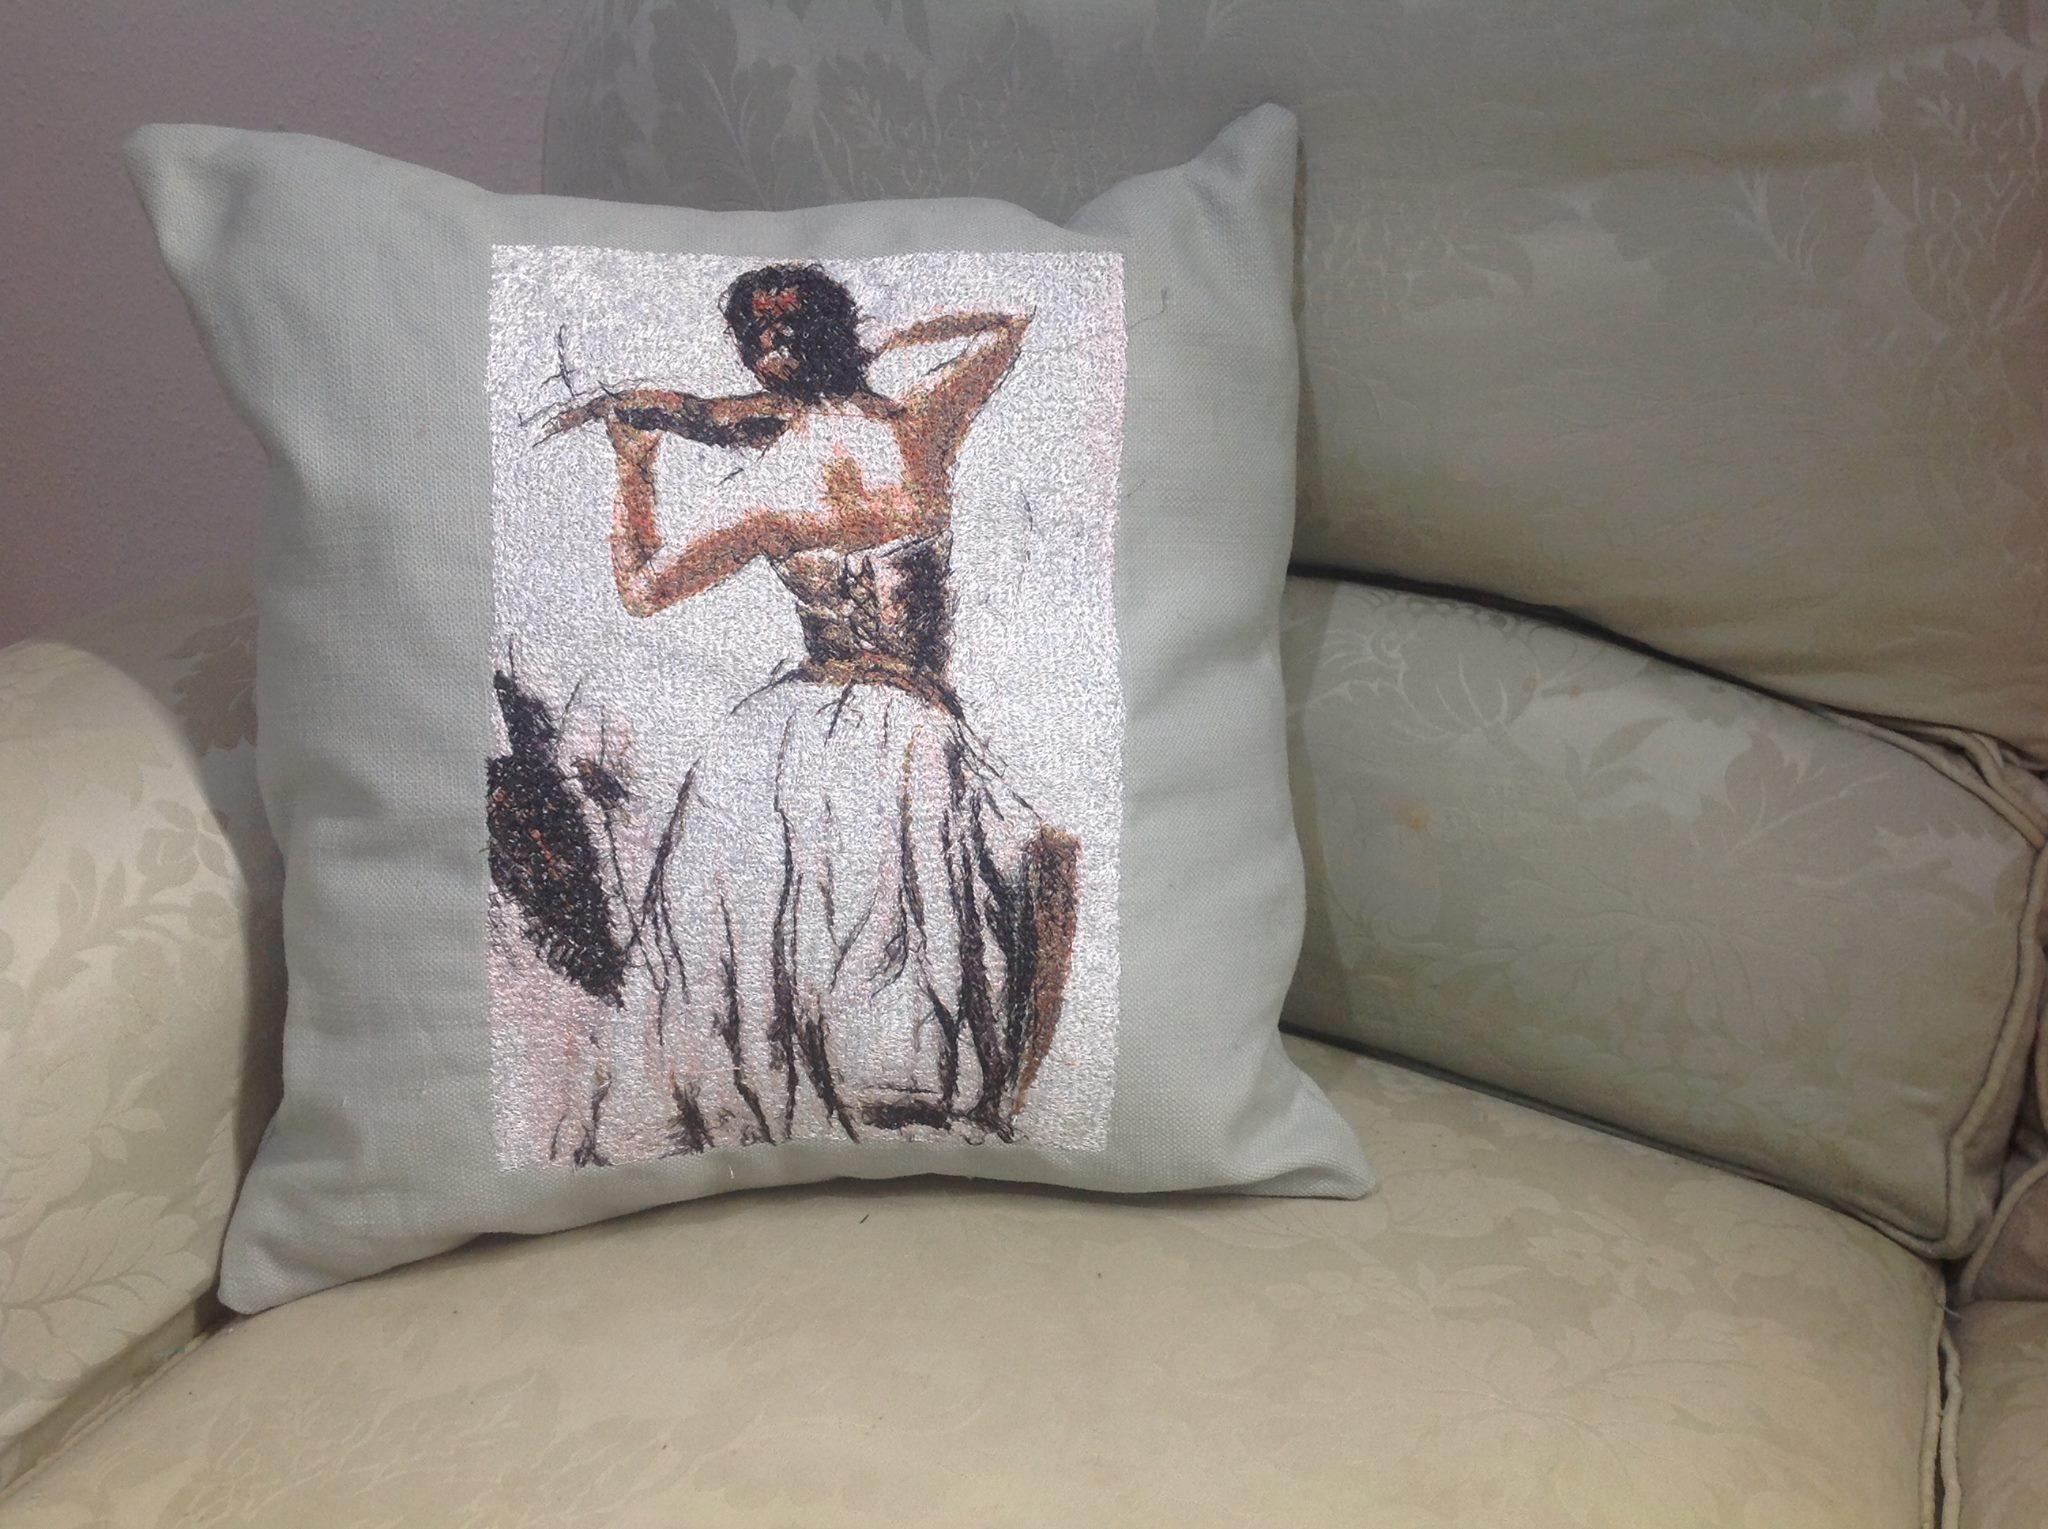 Embroidered cushion with violinist woman free design